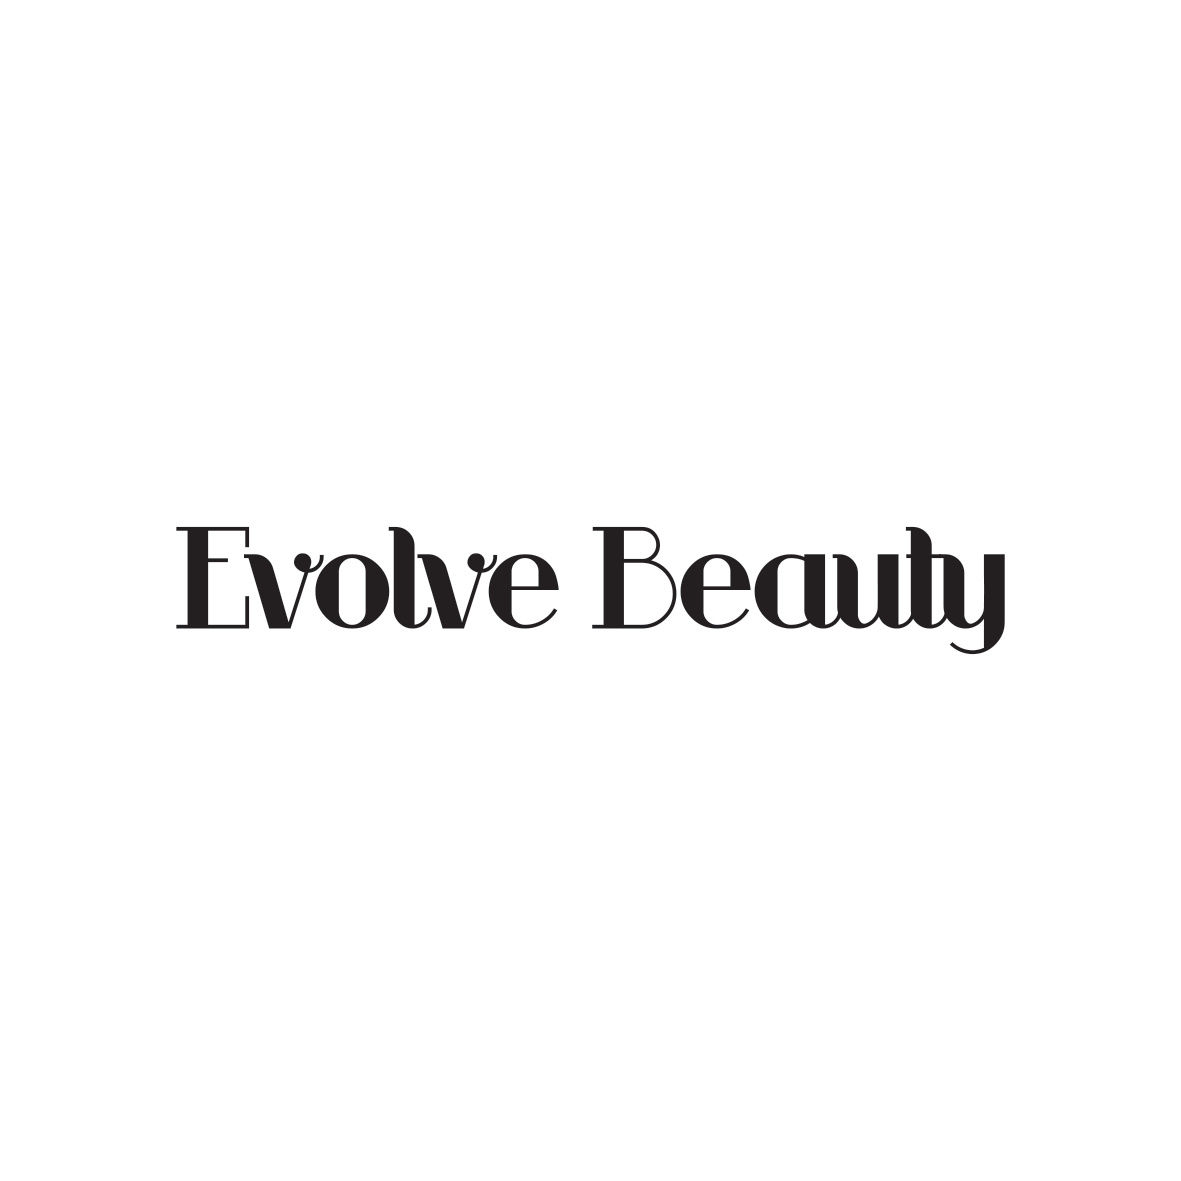 Evolve Beauty Logo